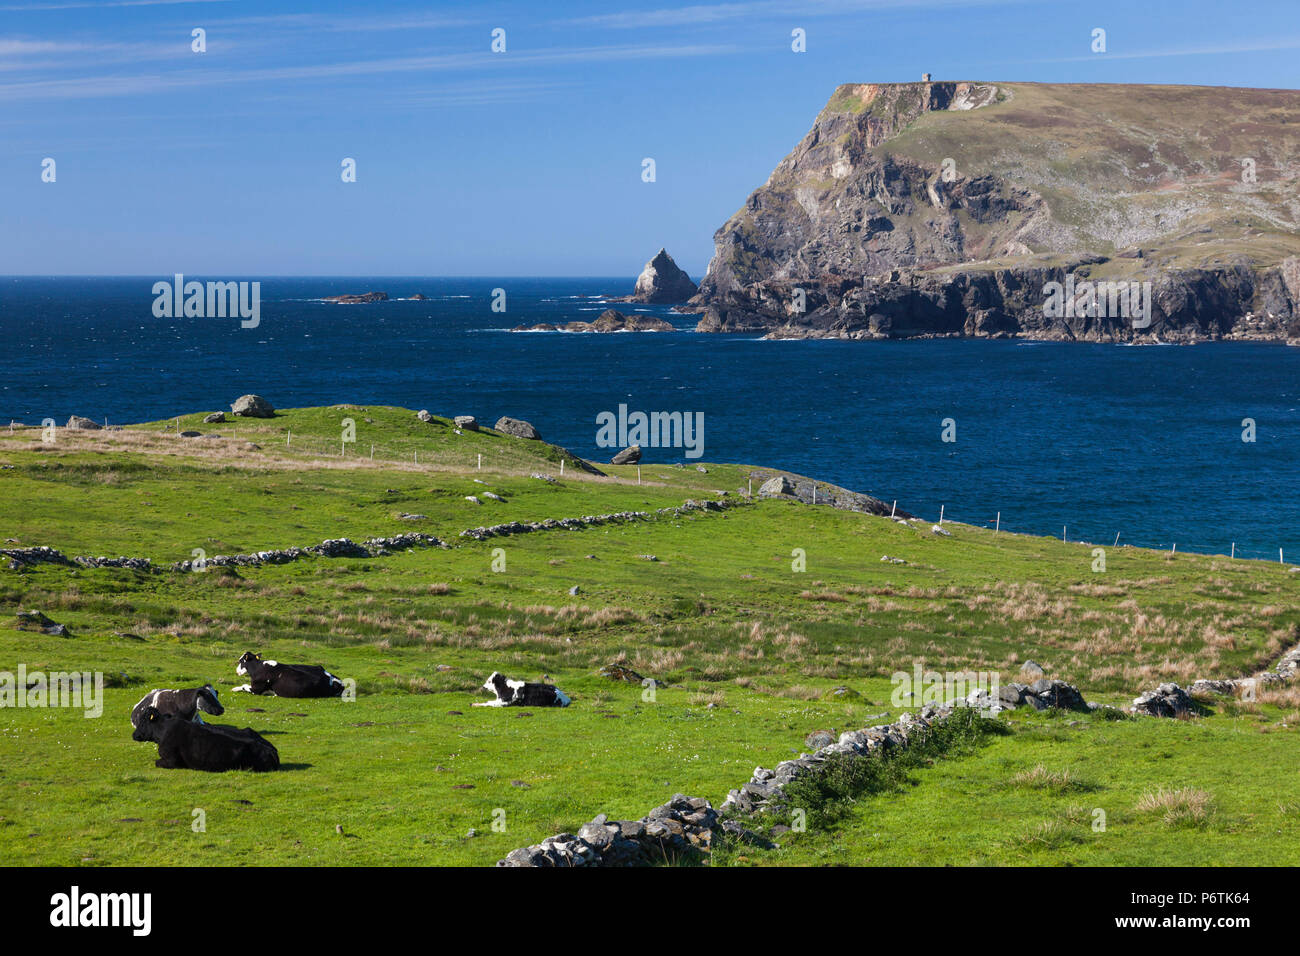 Ireland, County Donegal, Glencolumbkille, view of Glen Head - Stock Image